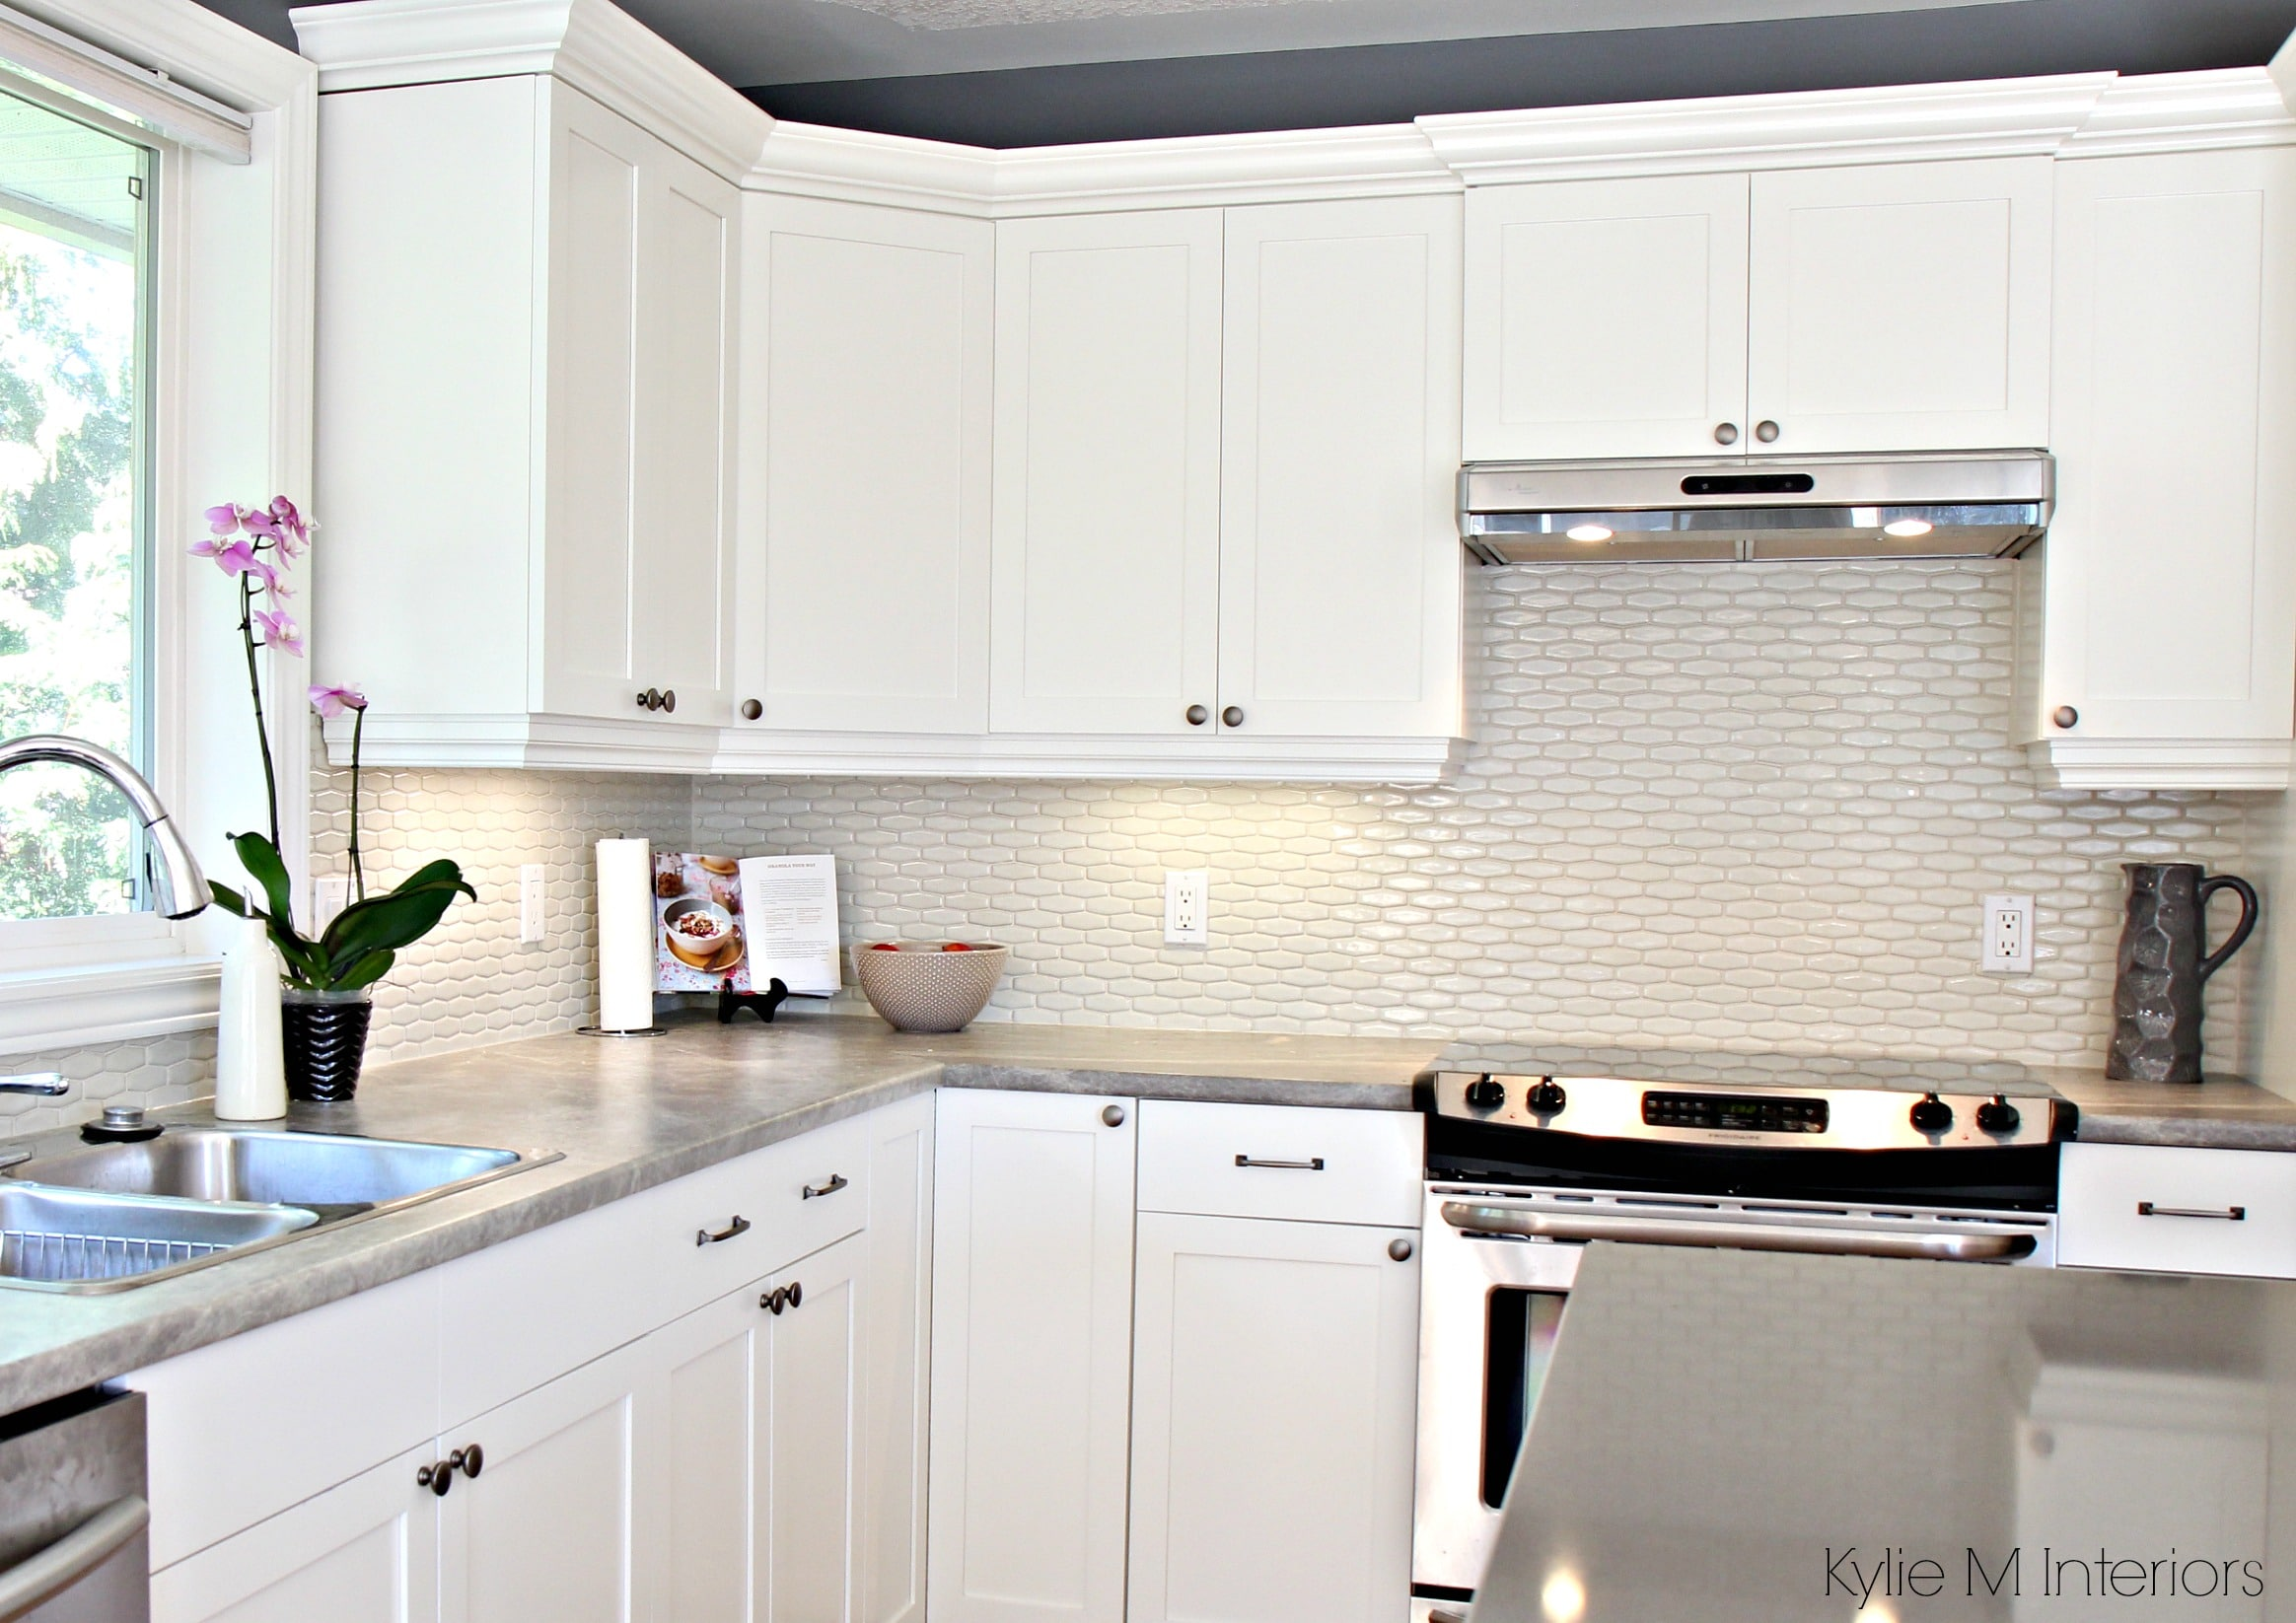 Maple cabinets painted Cloud White, Gray paint colour ... on What Color Backsplash With Maple Cabinets  id=66488